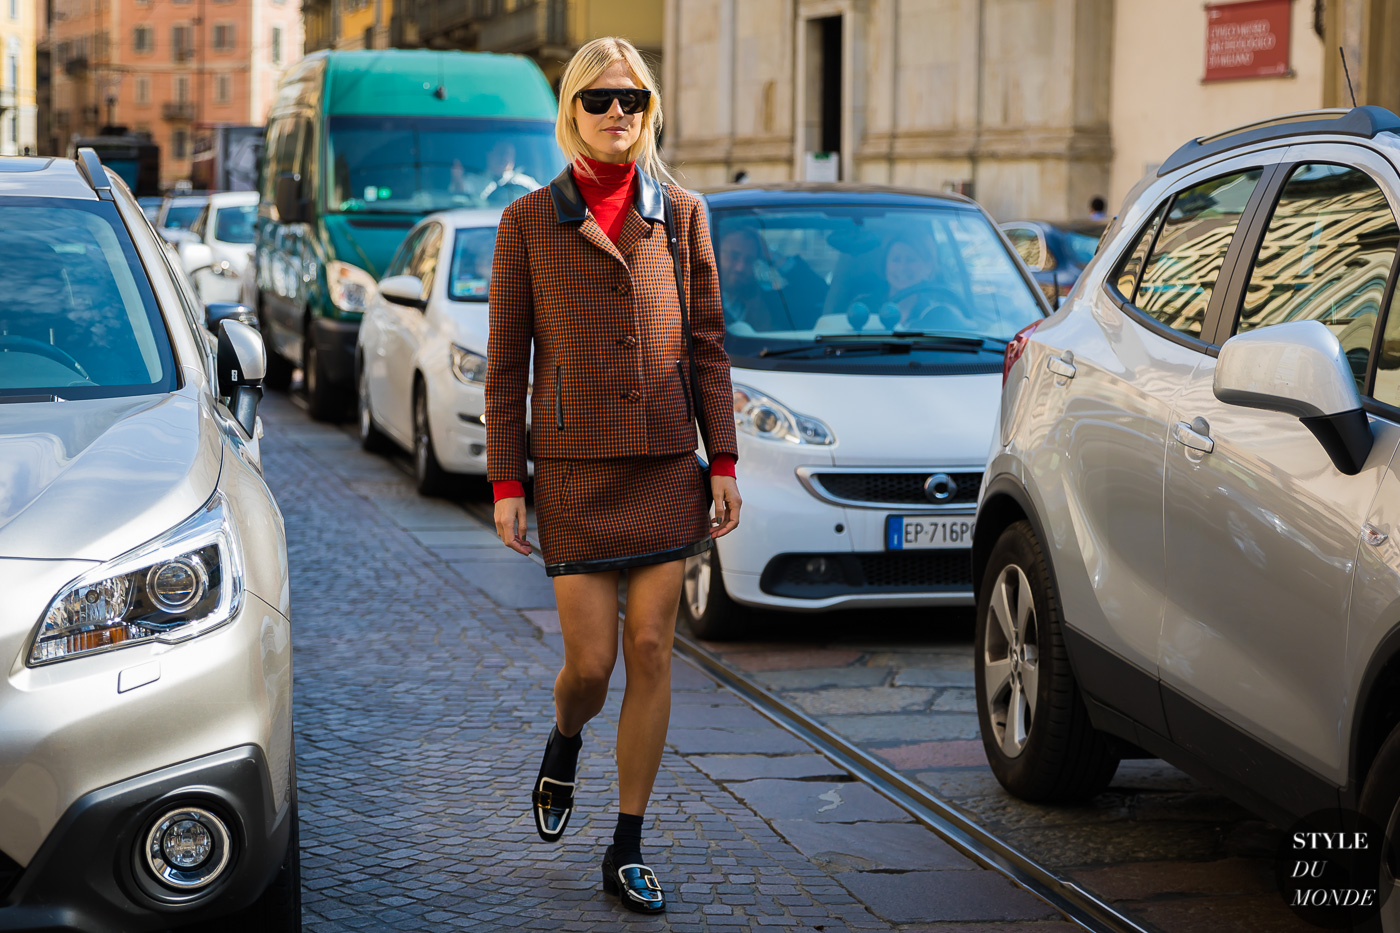 Linda Tol by STYLEDUMONDE Street Style Fashion Photography_48A9618